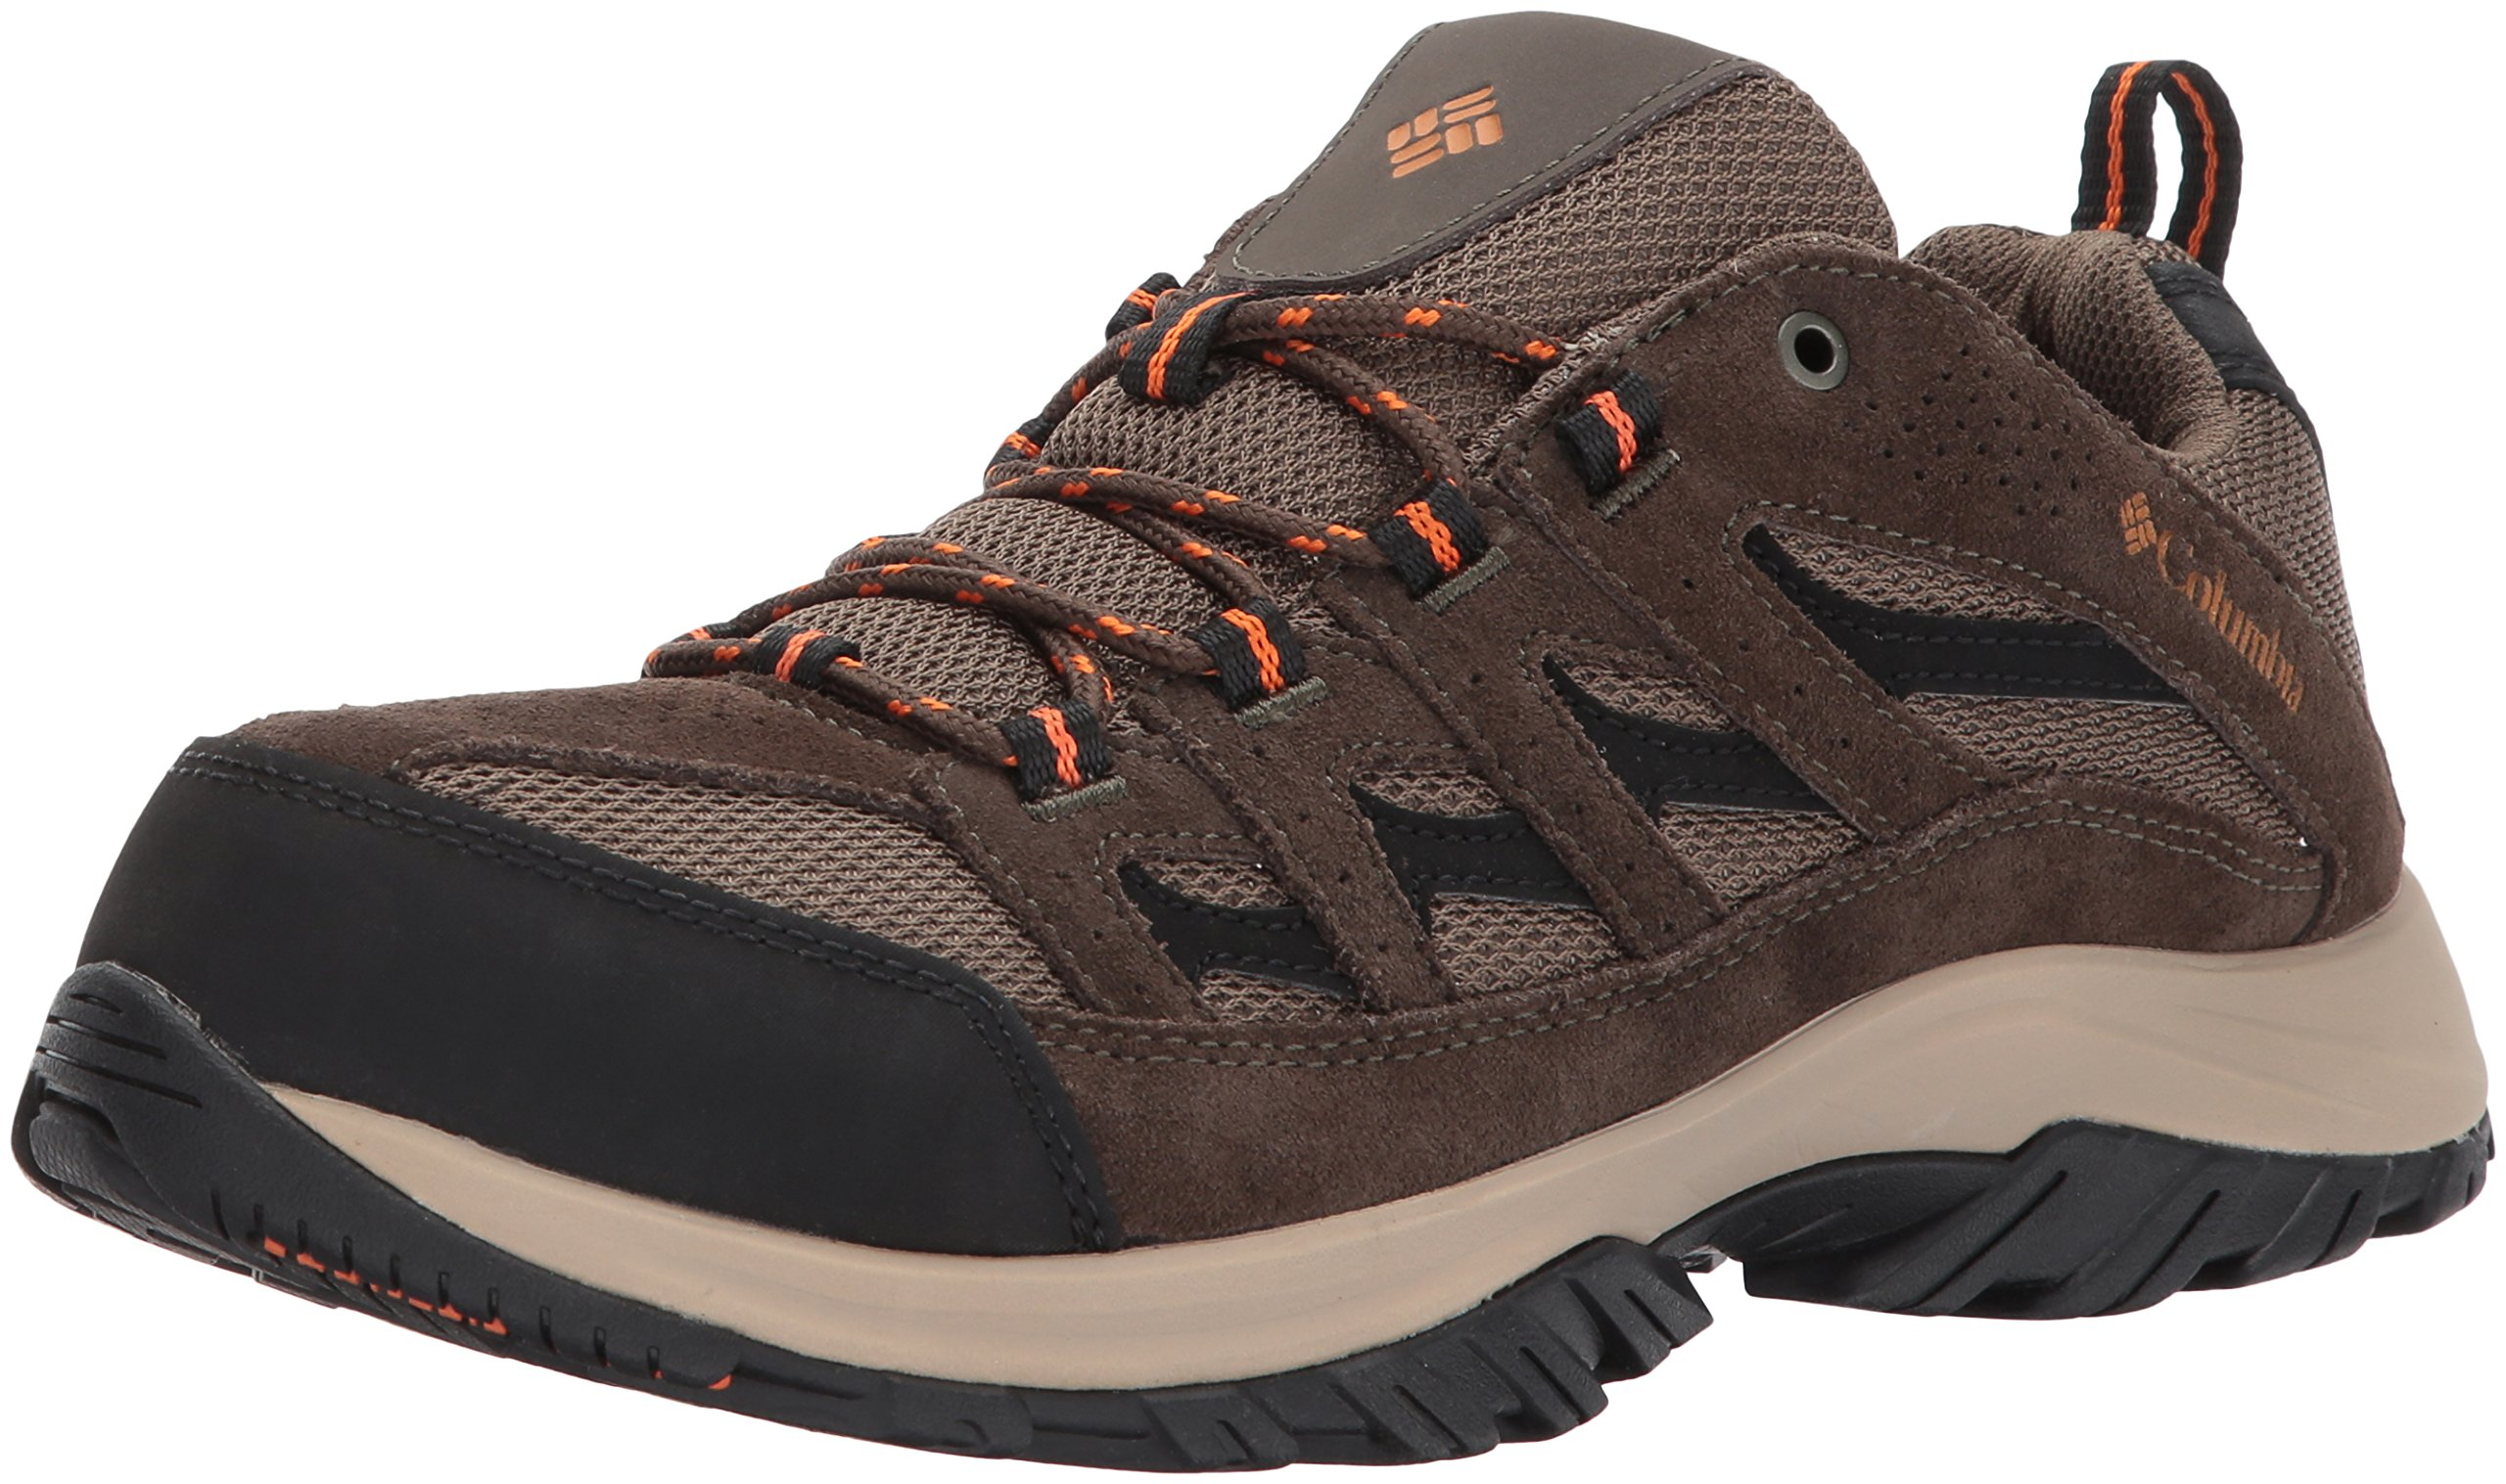 Columbia Men's Crestwood Hiking Shoe, Camo Brown, Heatwave, 10 D US